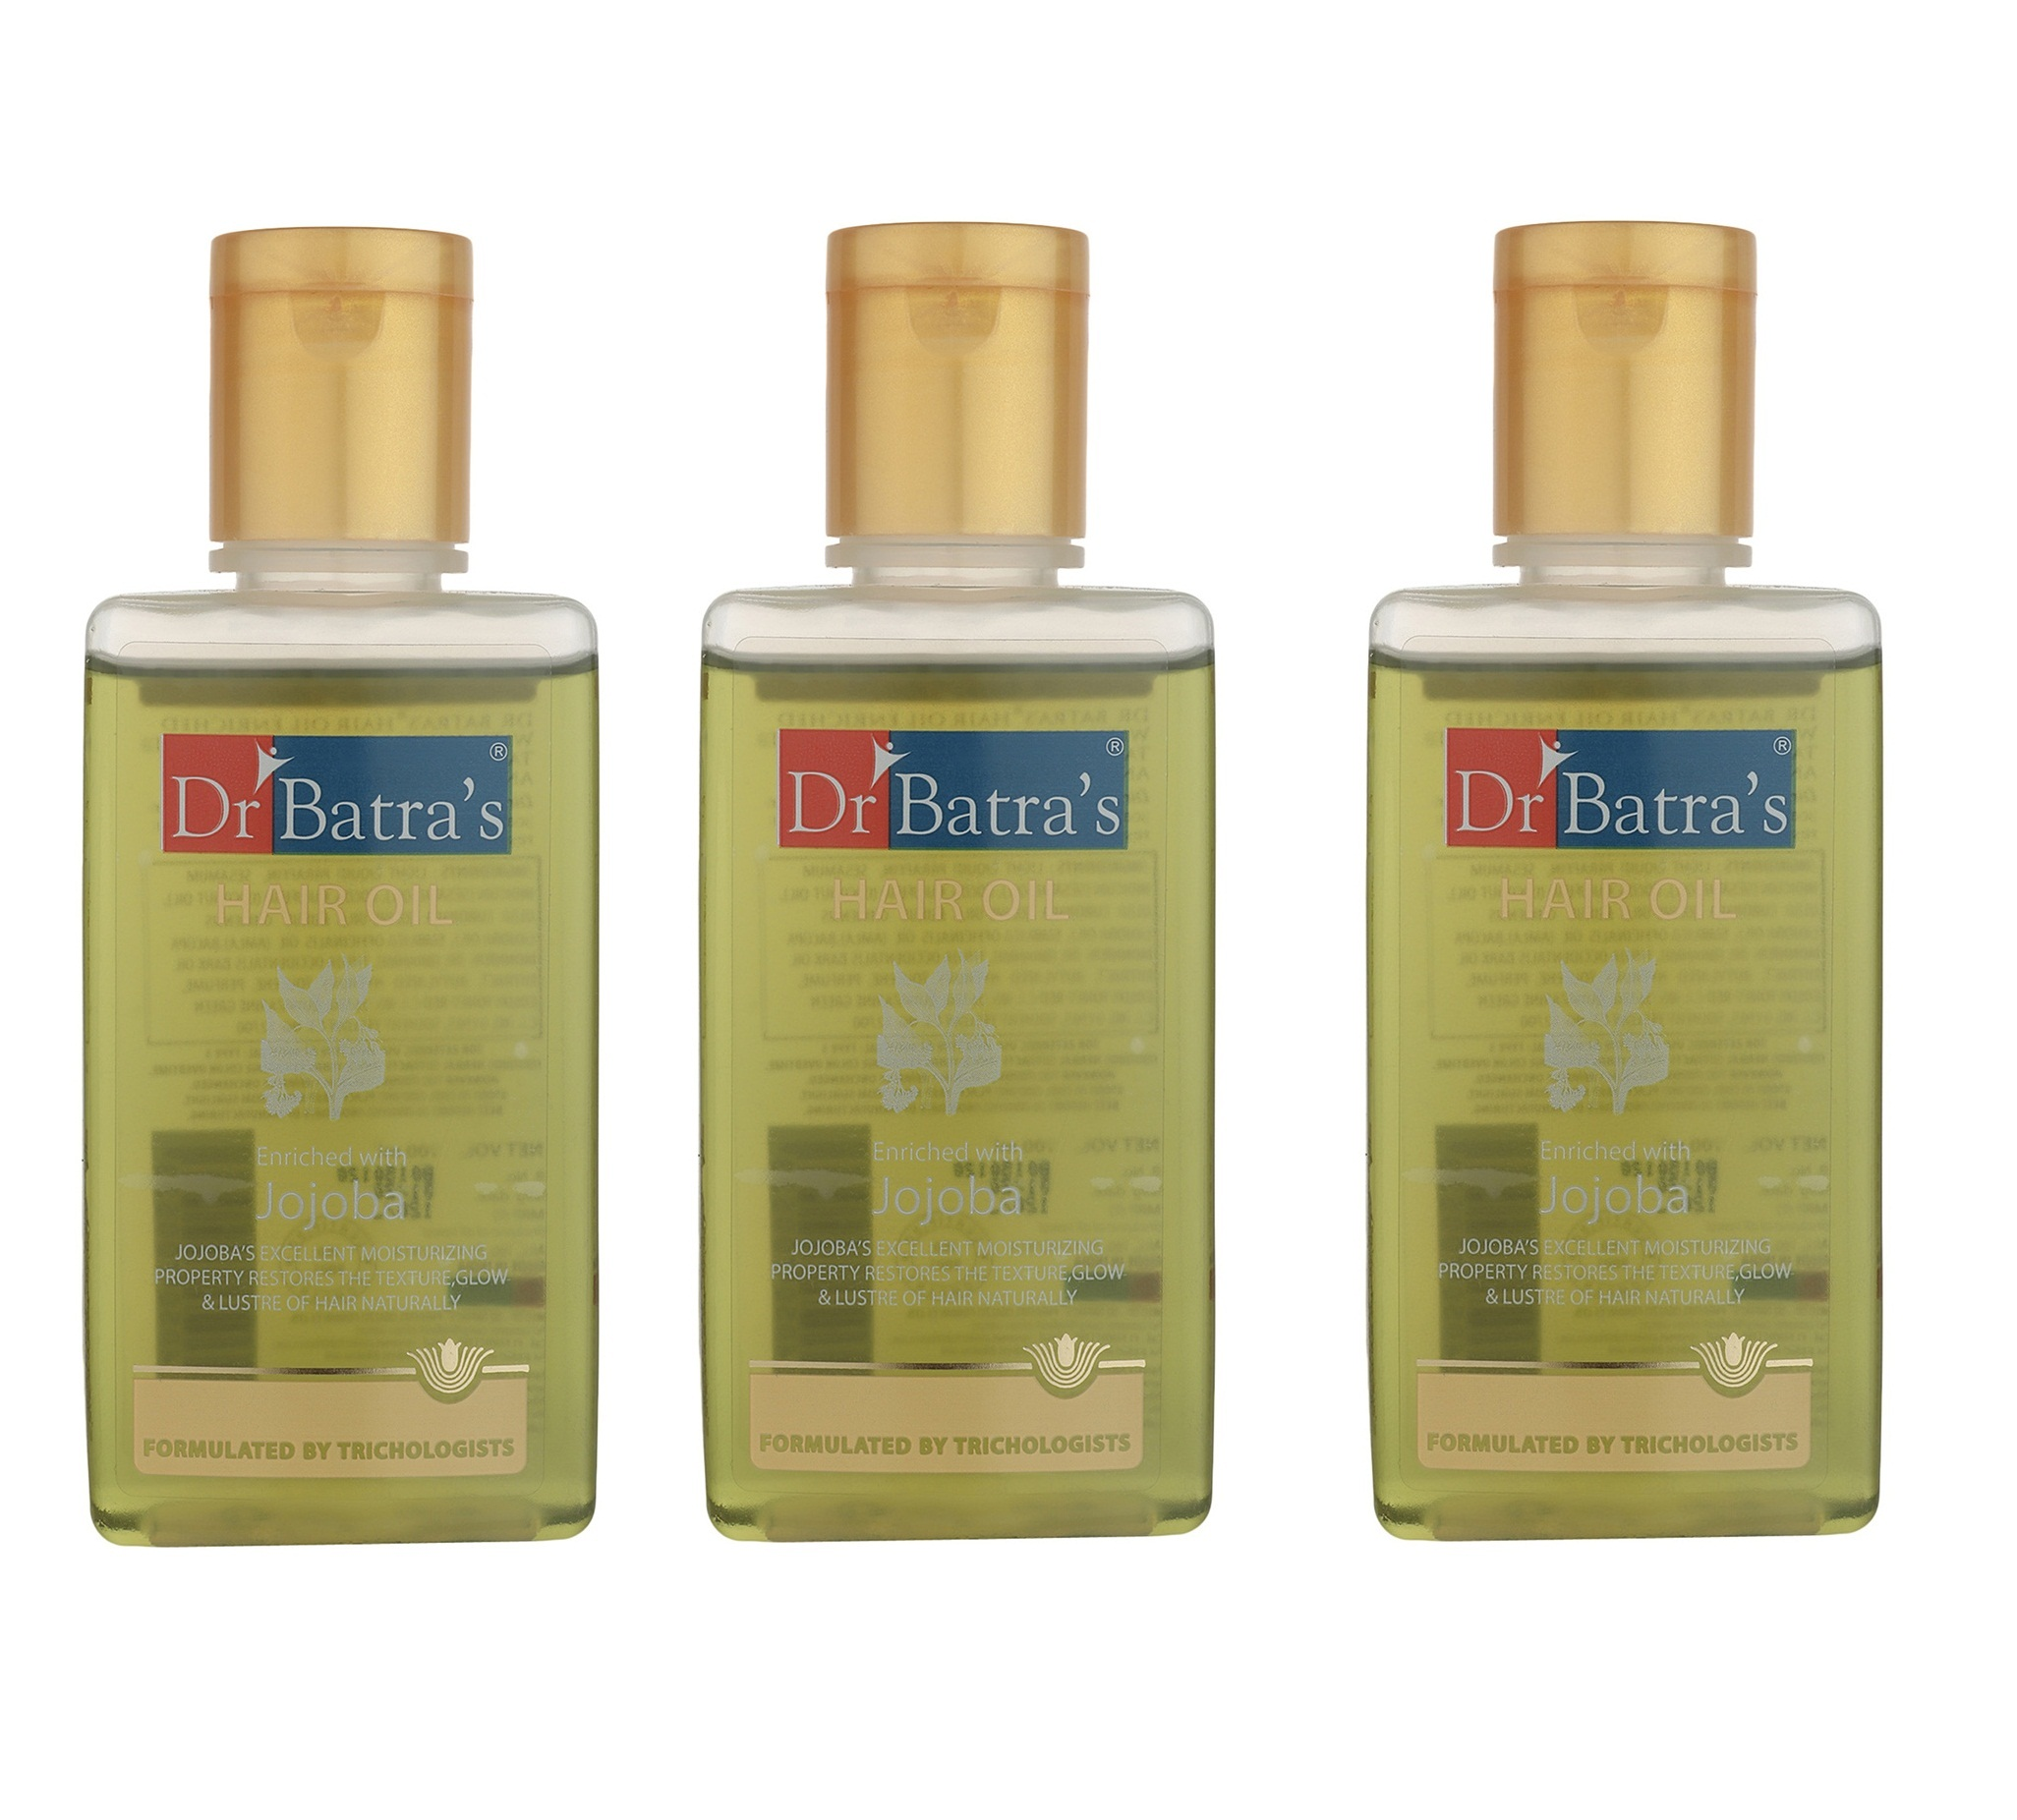 Dr Batra's | Dr Batra's Hair Oil Enriched With Jojoba - 100 ml (Pack of 3)